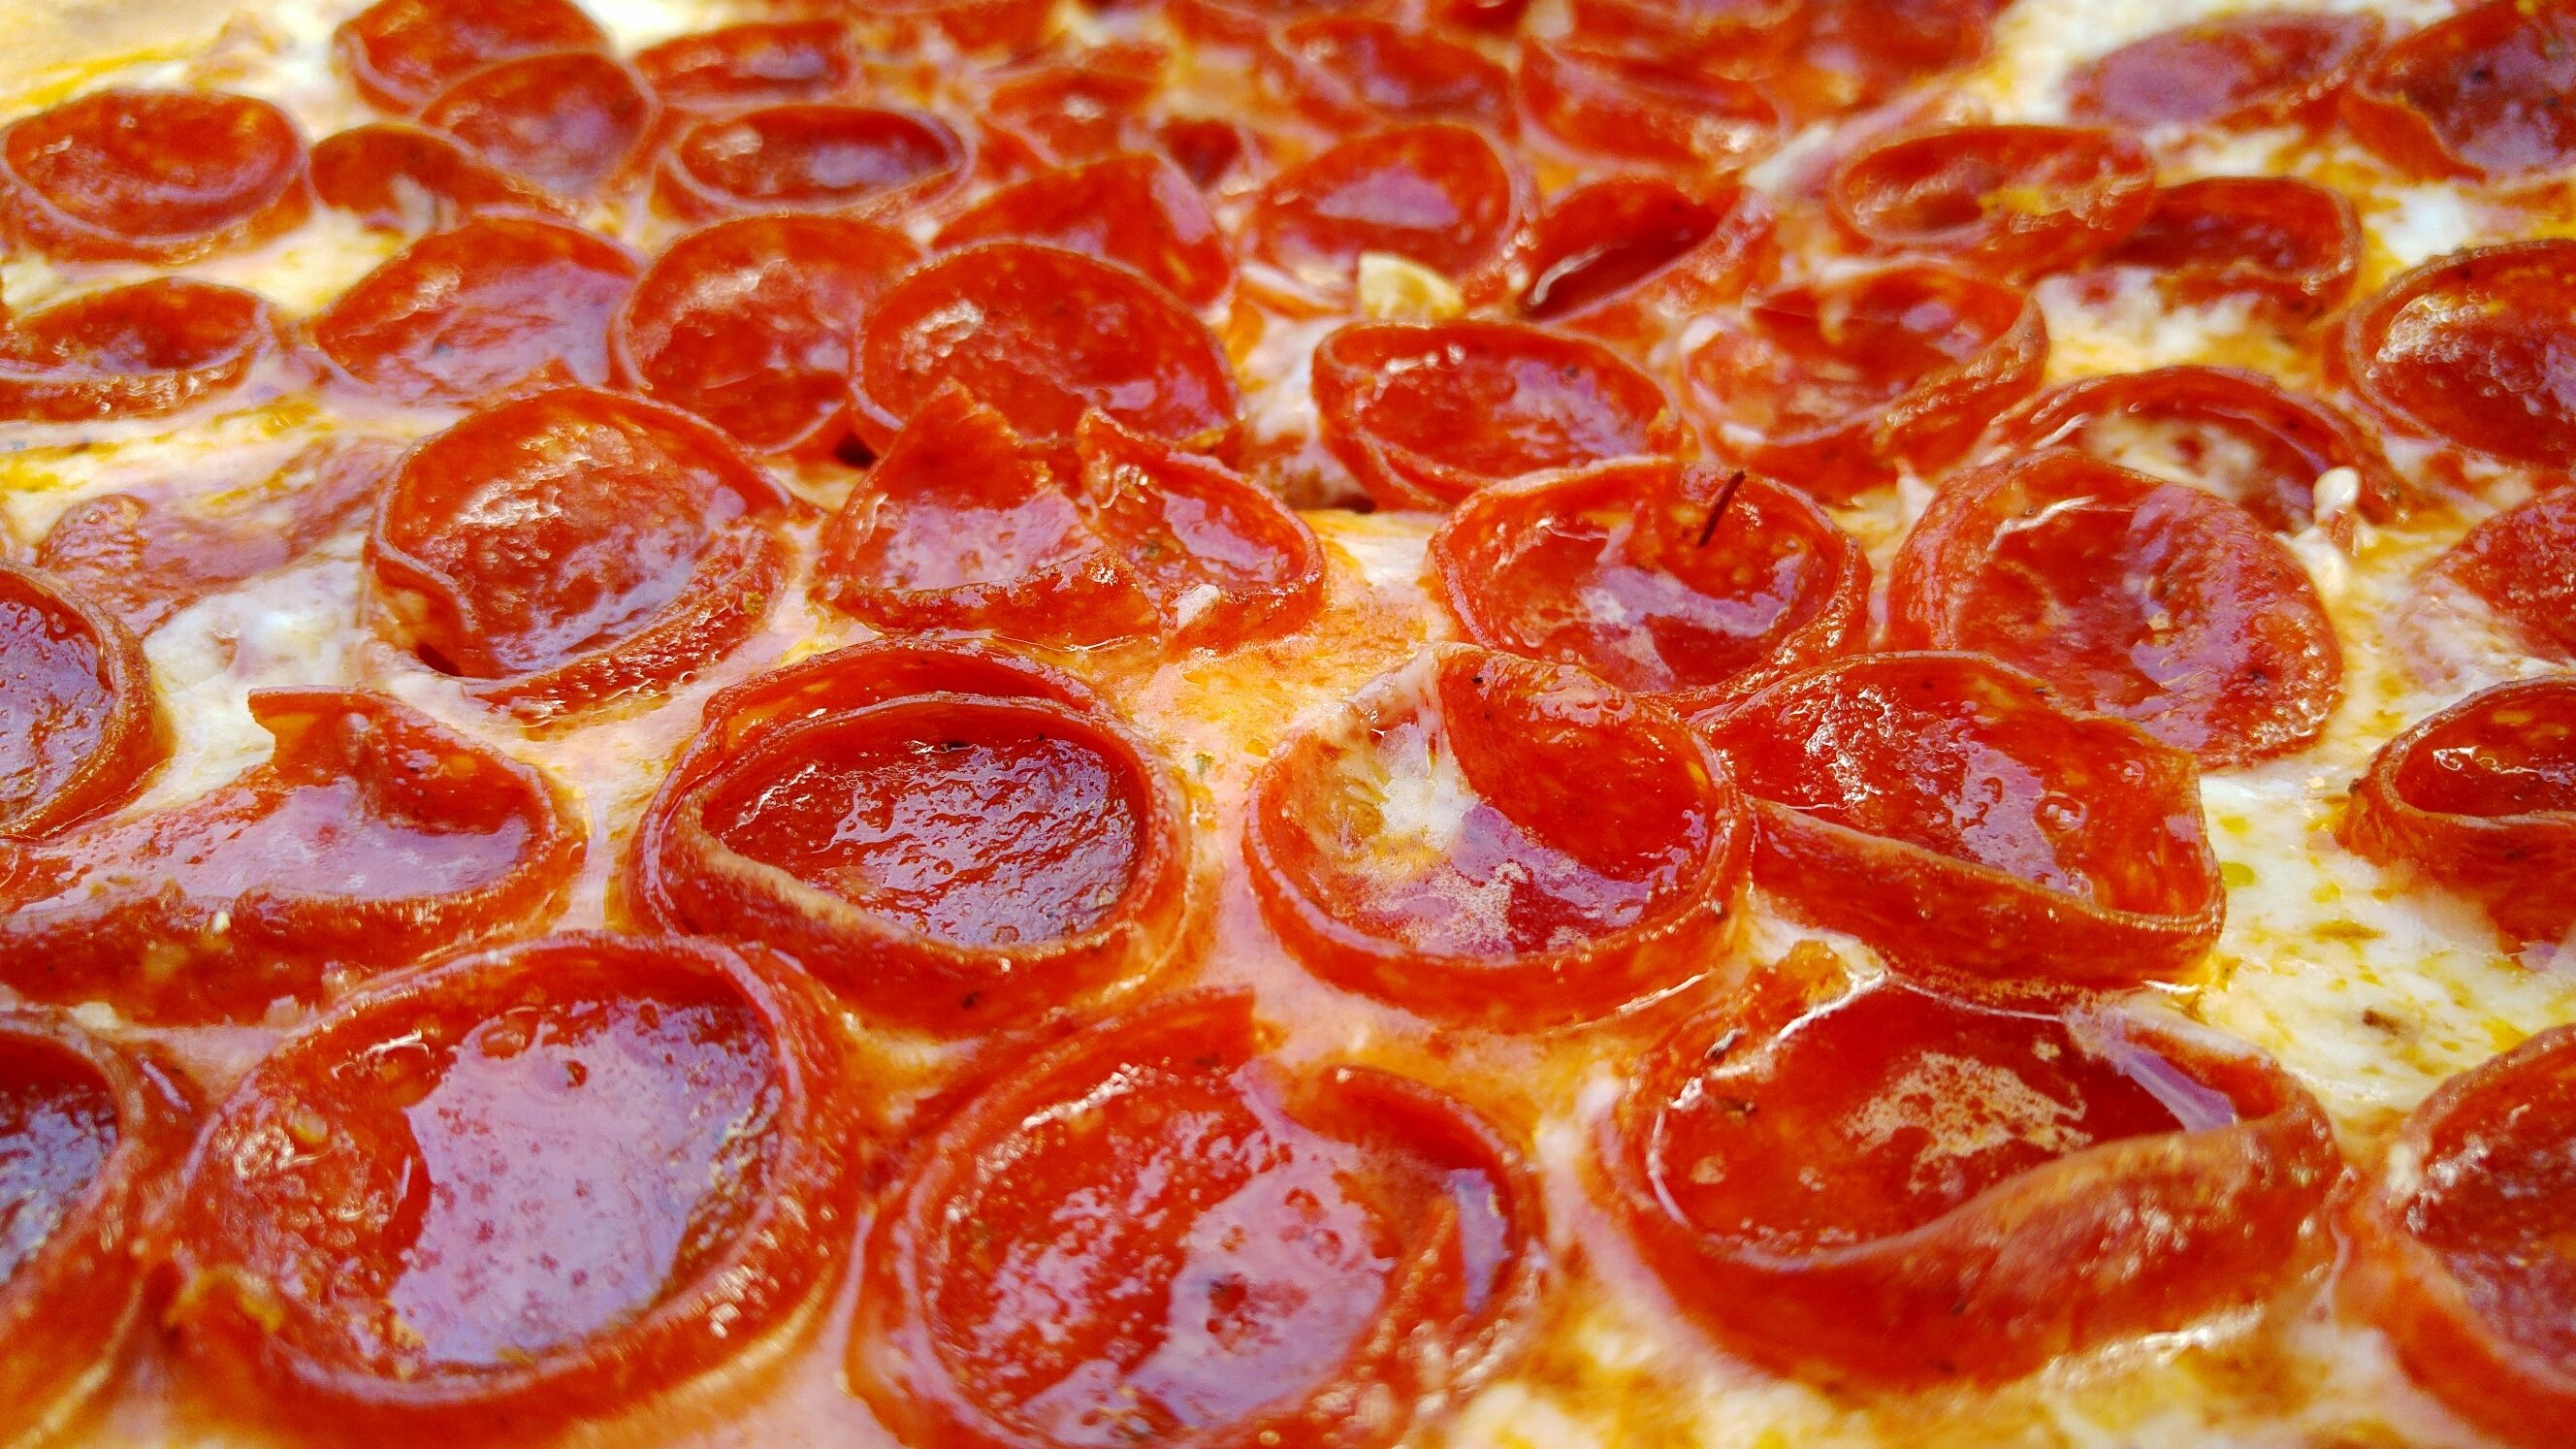 The USDA Recalled More Than 25,000 Pounds Of Sausage And Pepperoni Pizza Toppings Over Listeria Fears